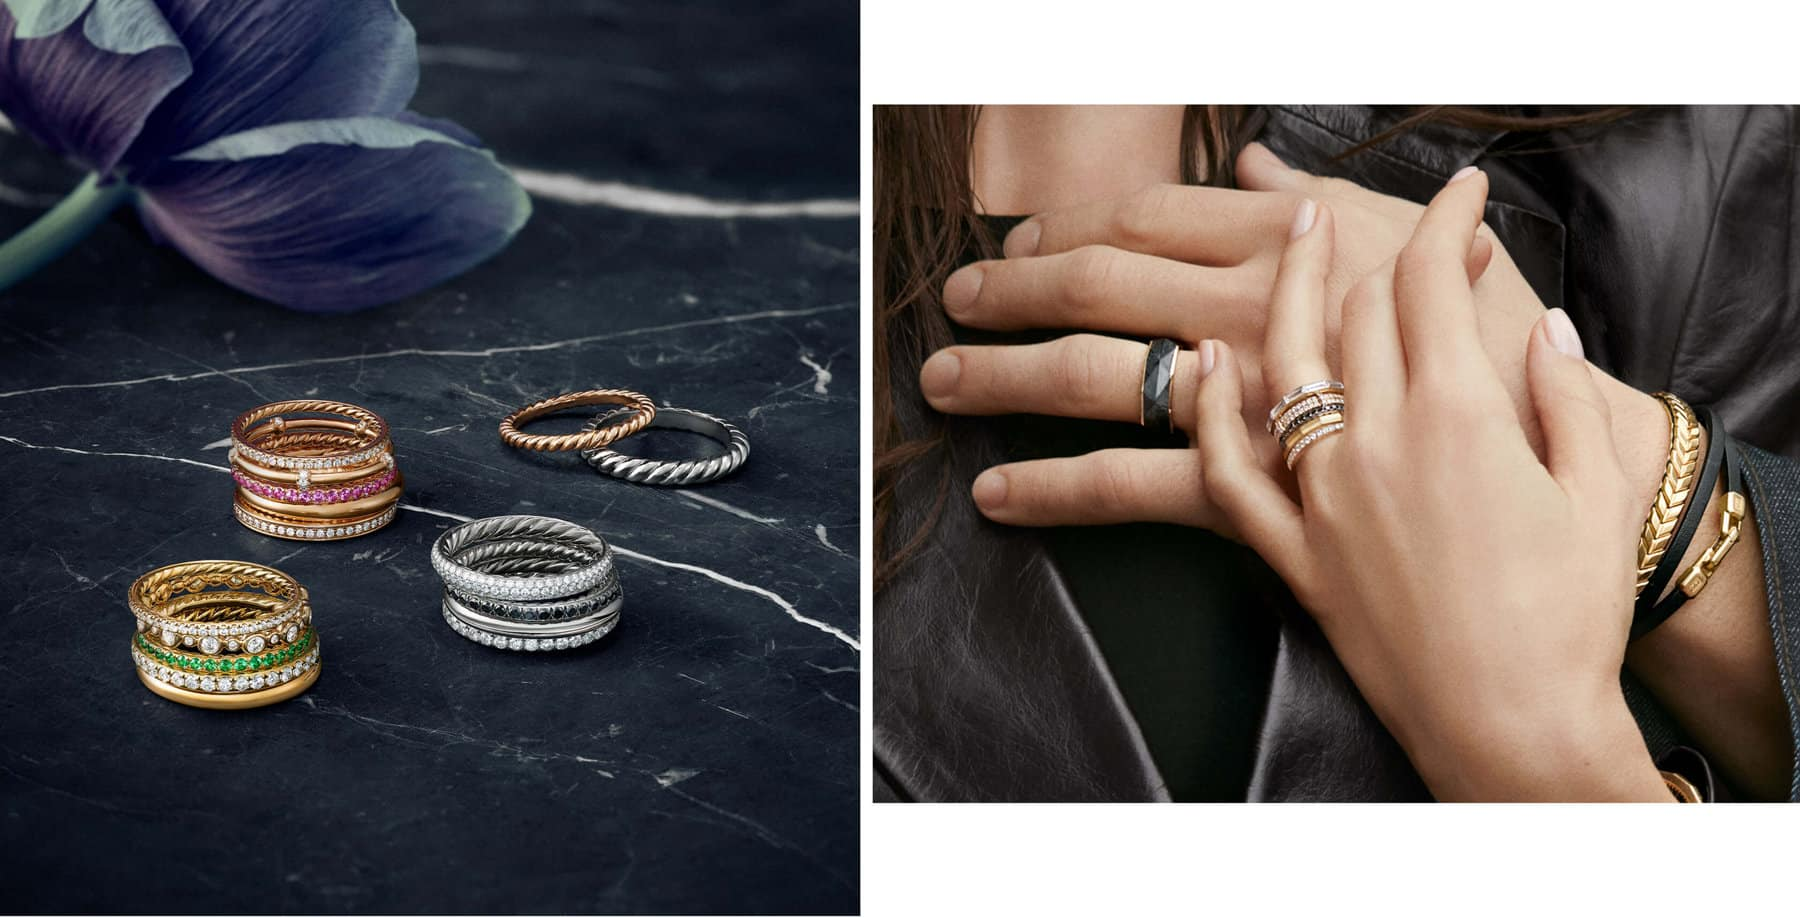 A image features a male and female model wearing David Yurman jewelry, including wedding bands.